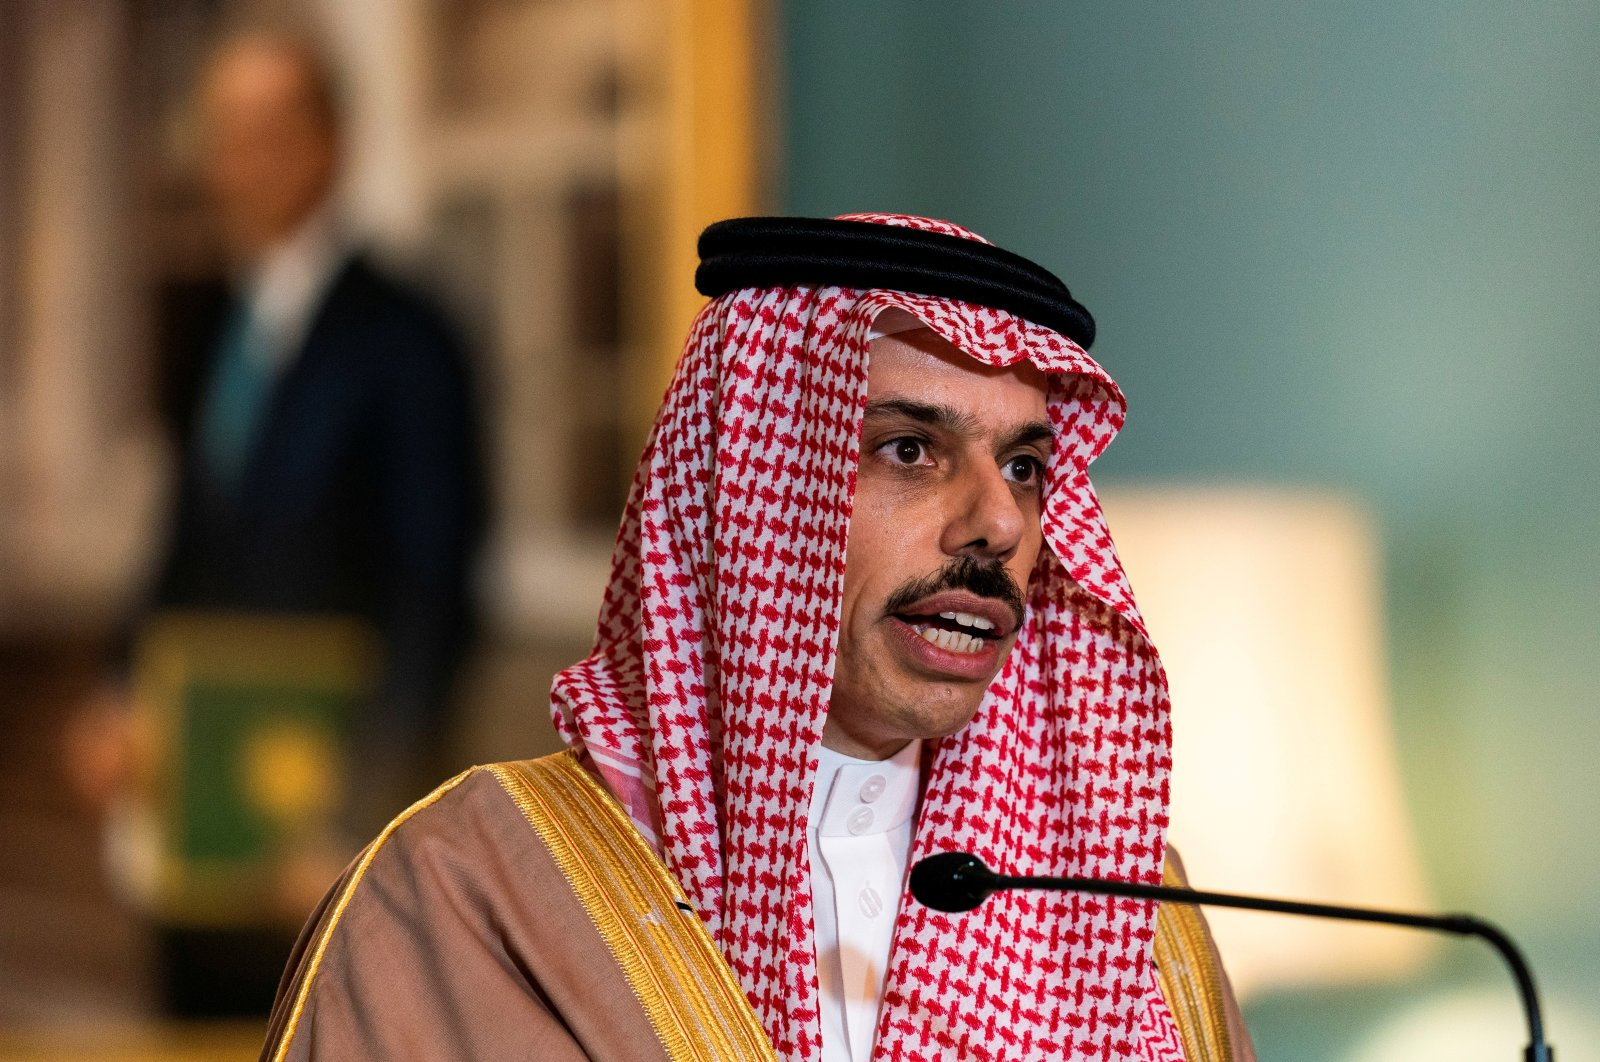 Saudi Minister of Foreign Affairs Prince Faisal bin Farhan Al Saud speaks during his meeting with U.S. Secretary of State Mike Pompeo, at the State Department, Washington, D.C., Oct. 14, 2020. (REUTERS)